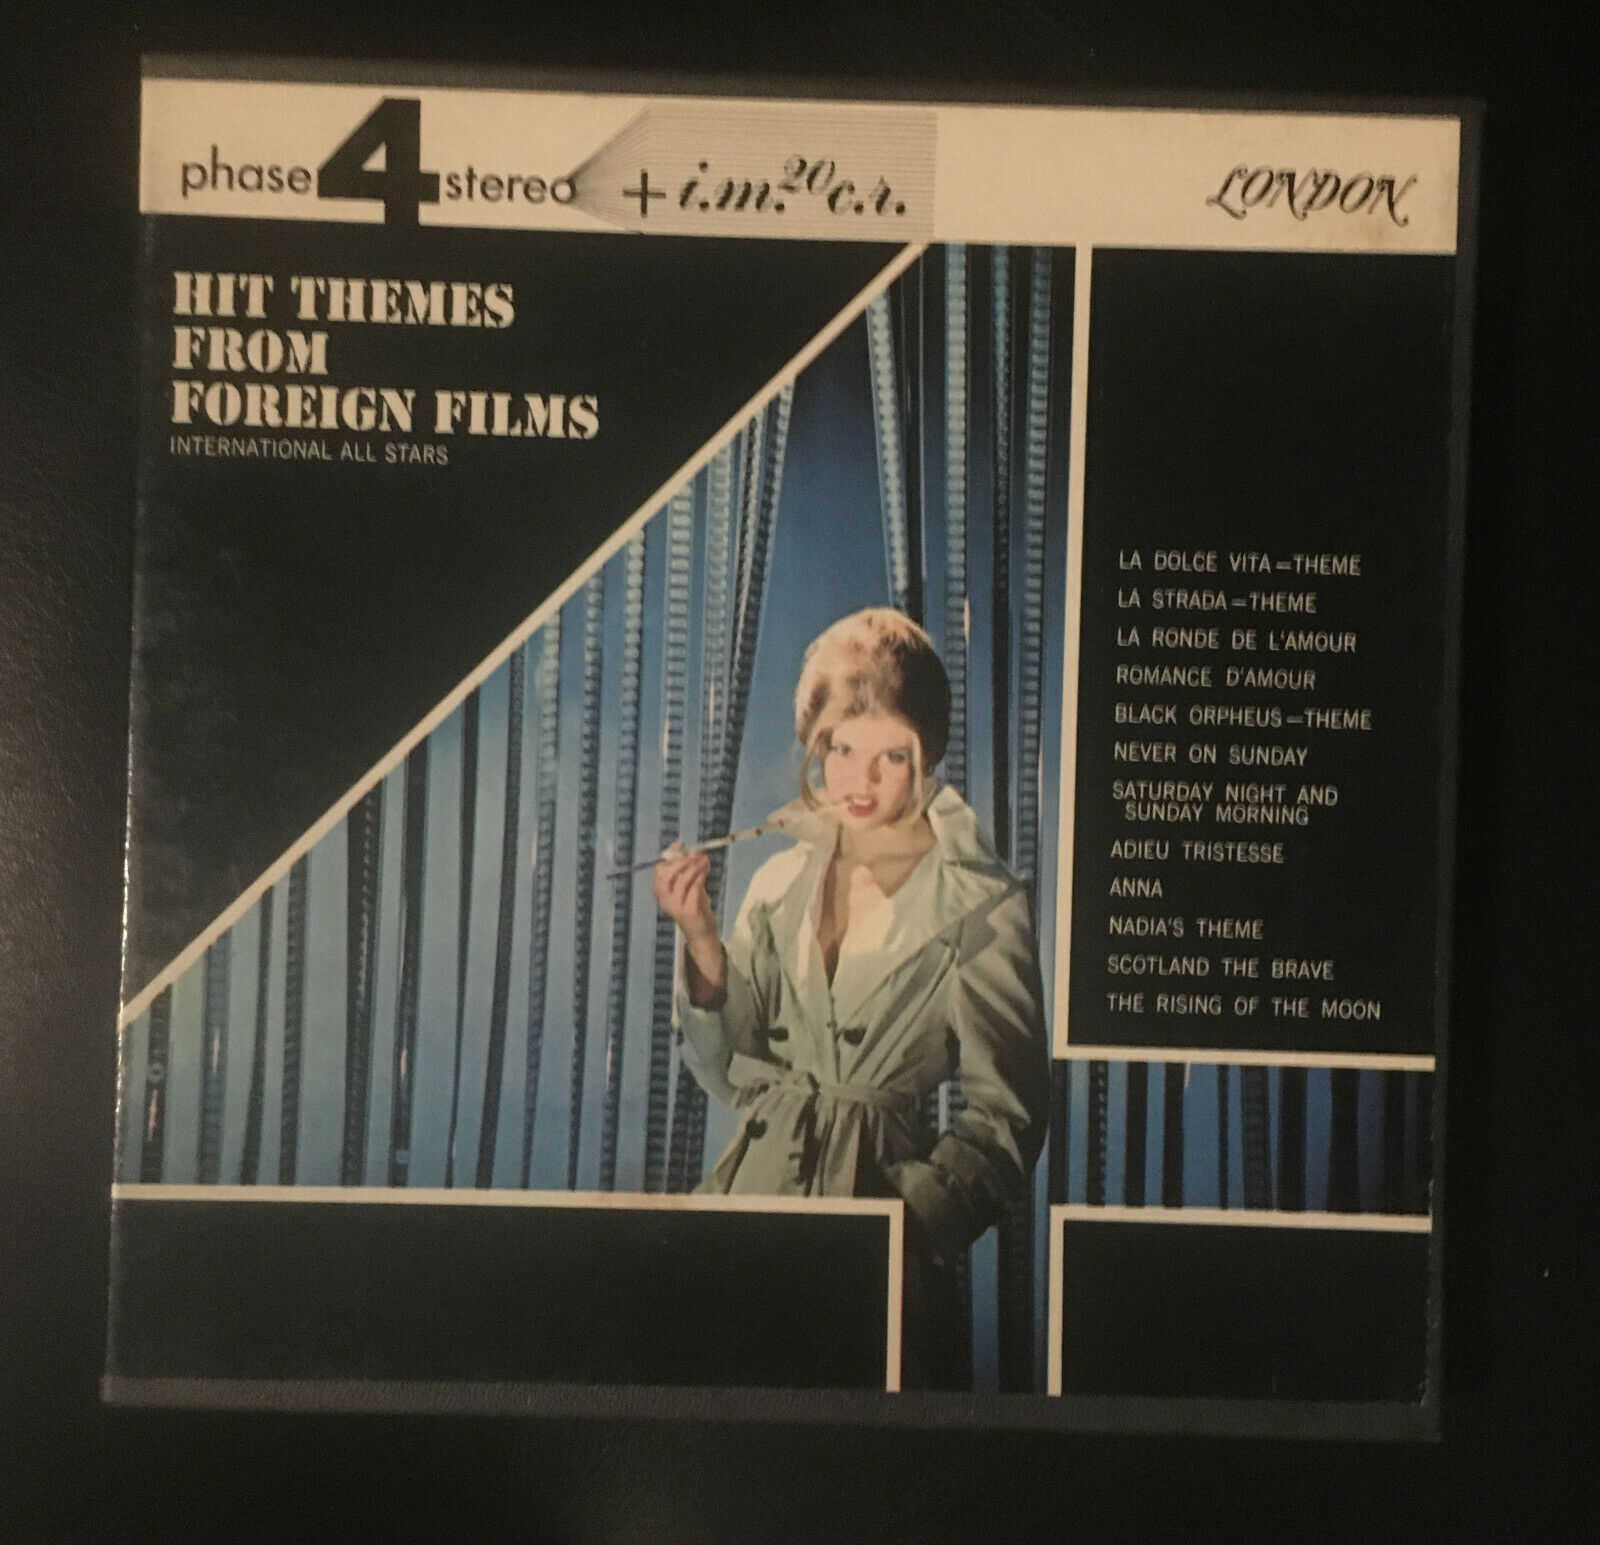 Hit Themes from Foreign Films 7 12 IPS Reel to Reel TAPE 4 TRACK London